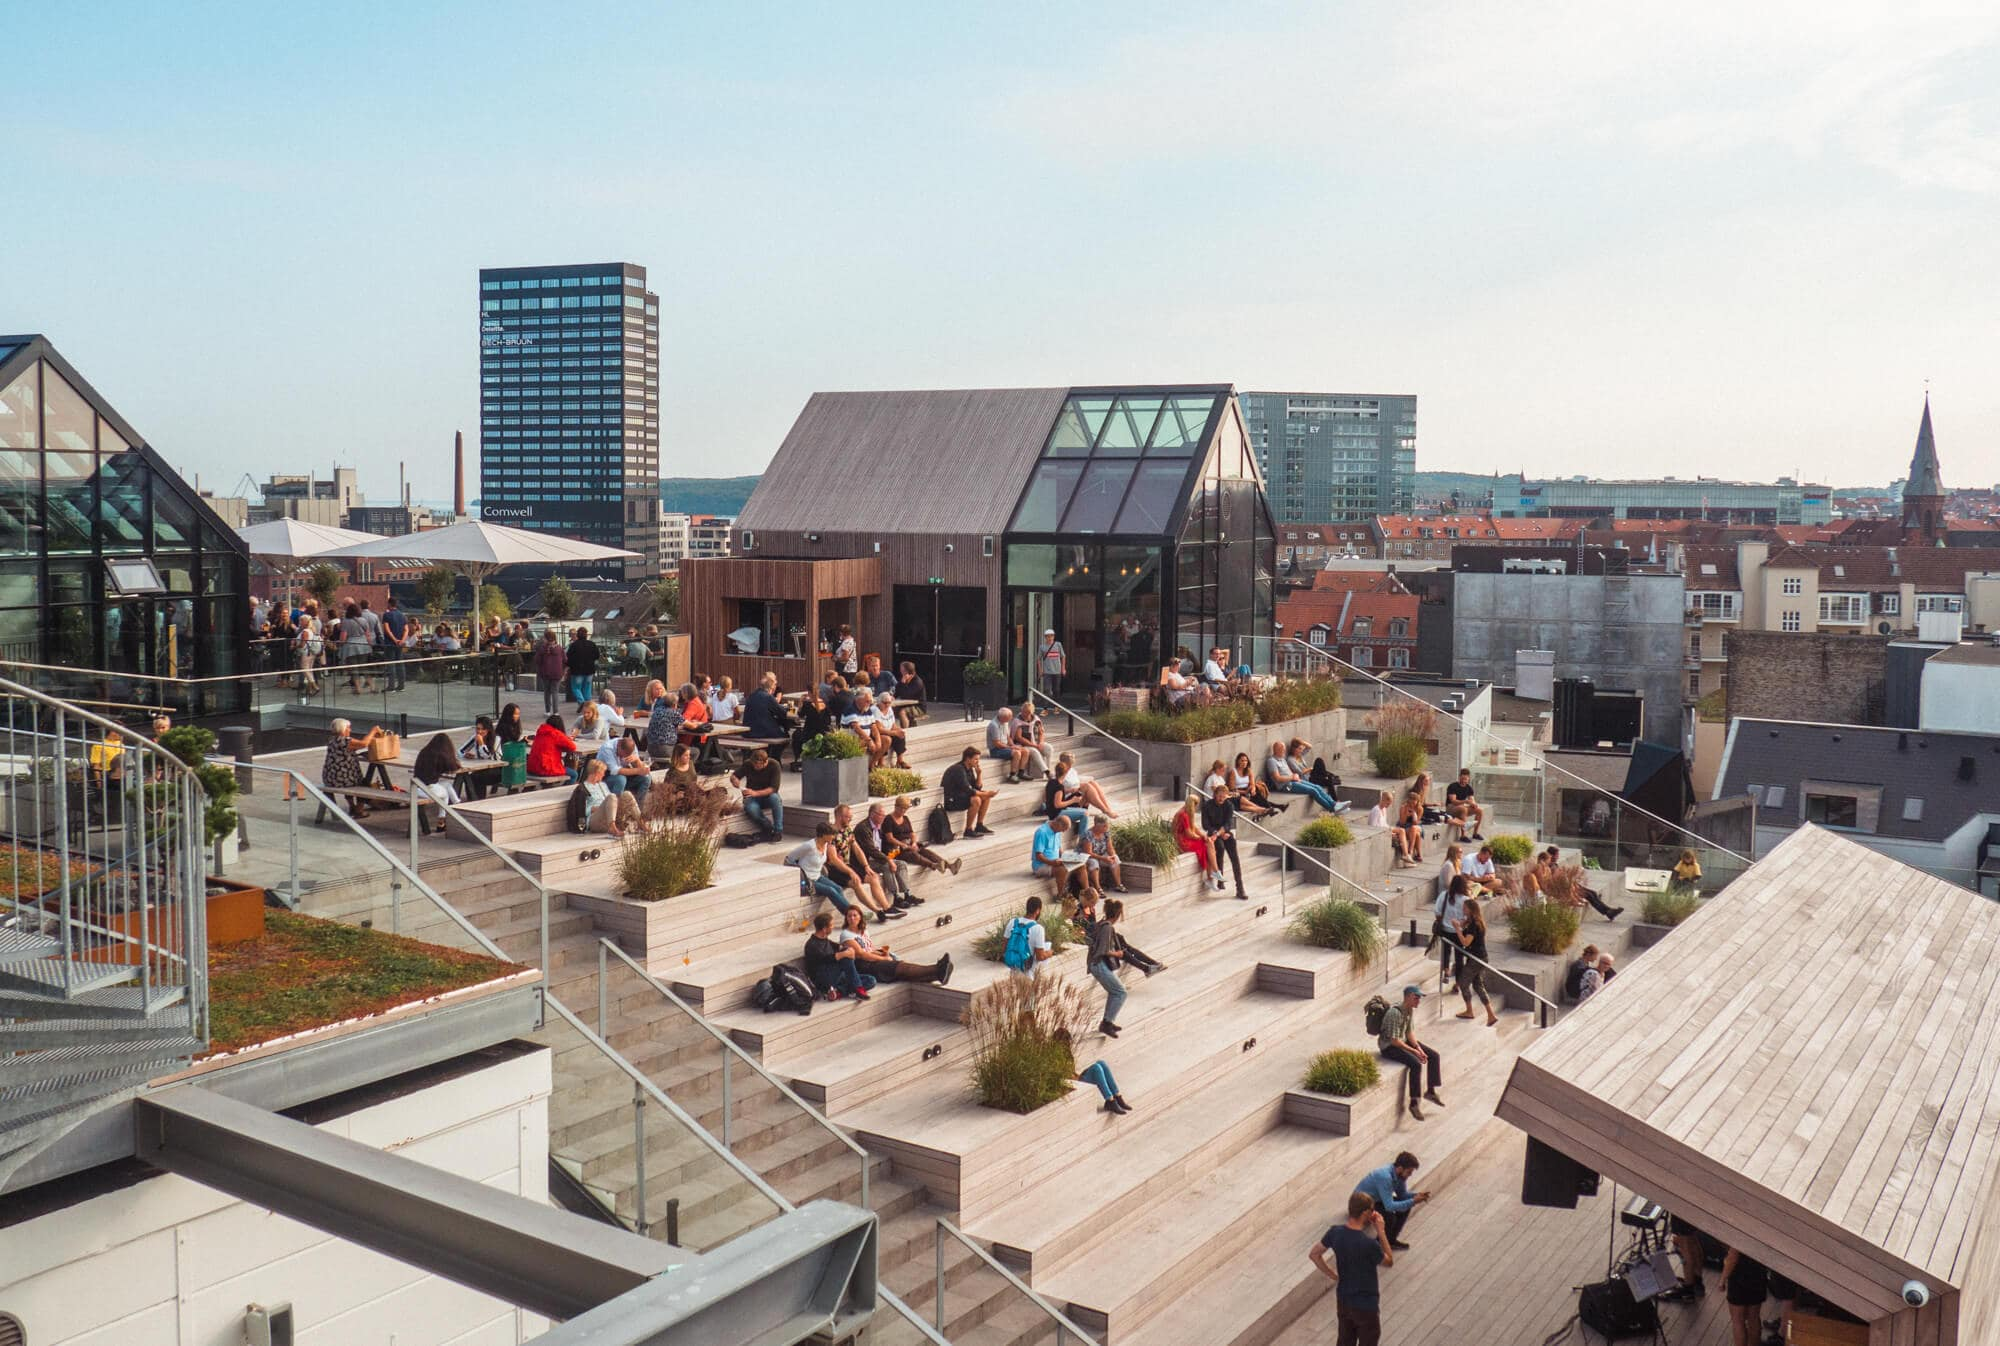 Two days in Aarhus - Denmark's happiest city. One of the best bars in town is Selling Rooftop which offers incredible some views